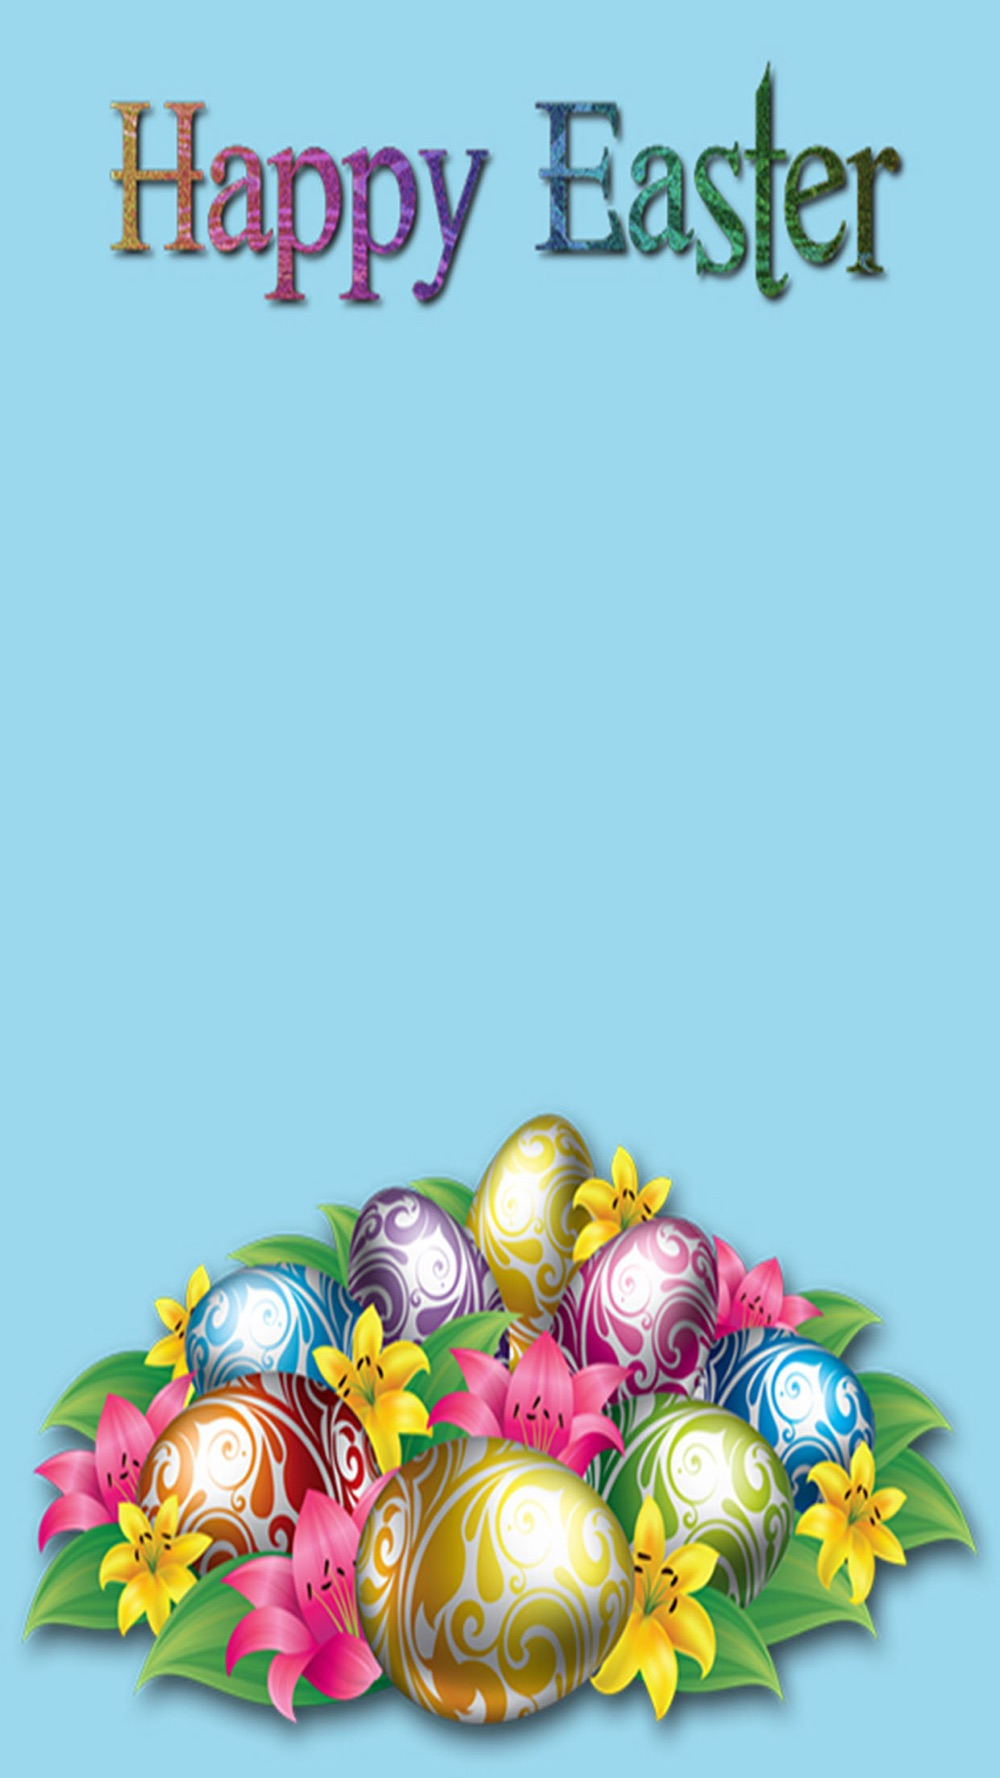 Happy Easter – Free Photo Editor and Greeting Card Maker